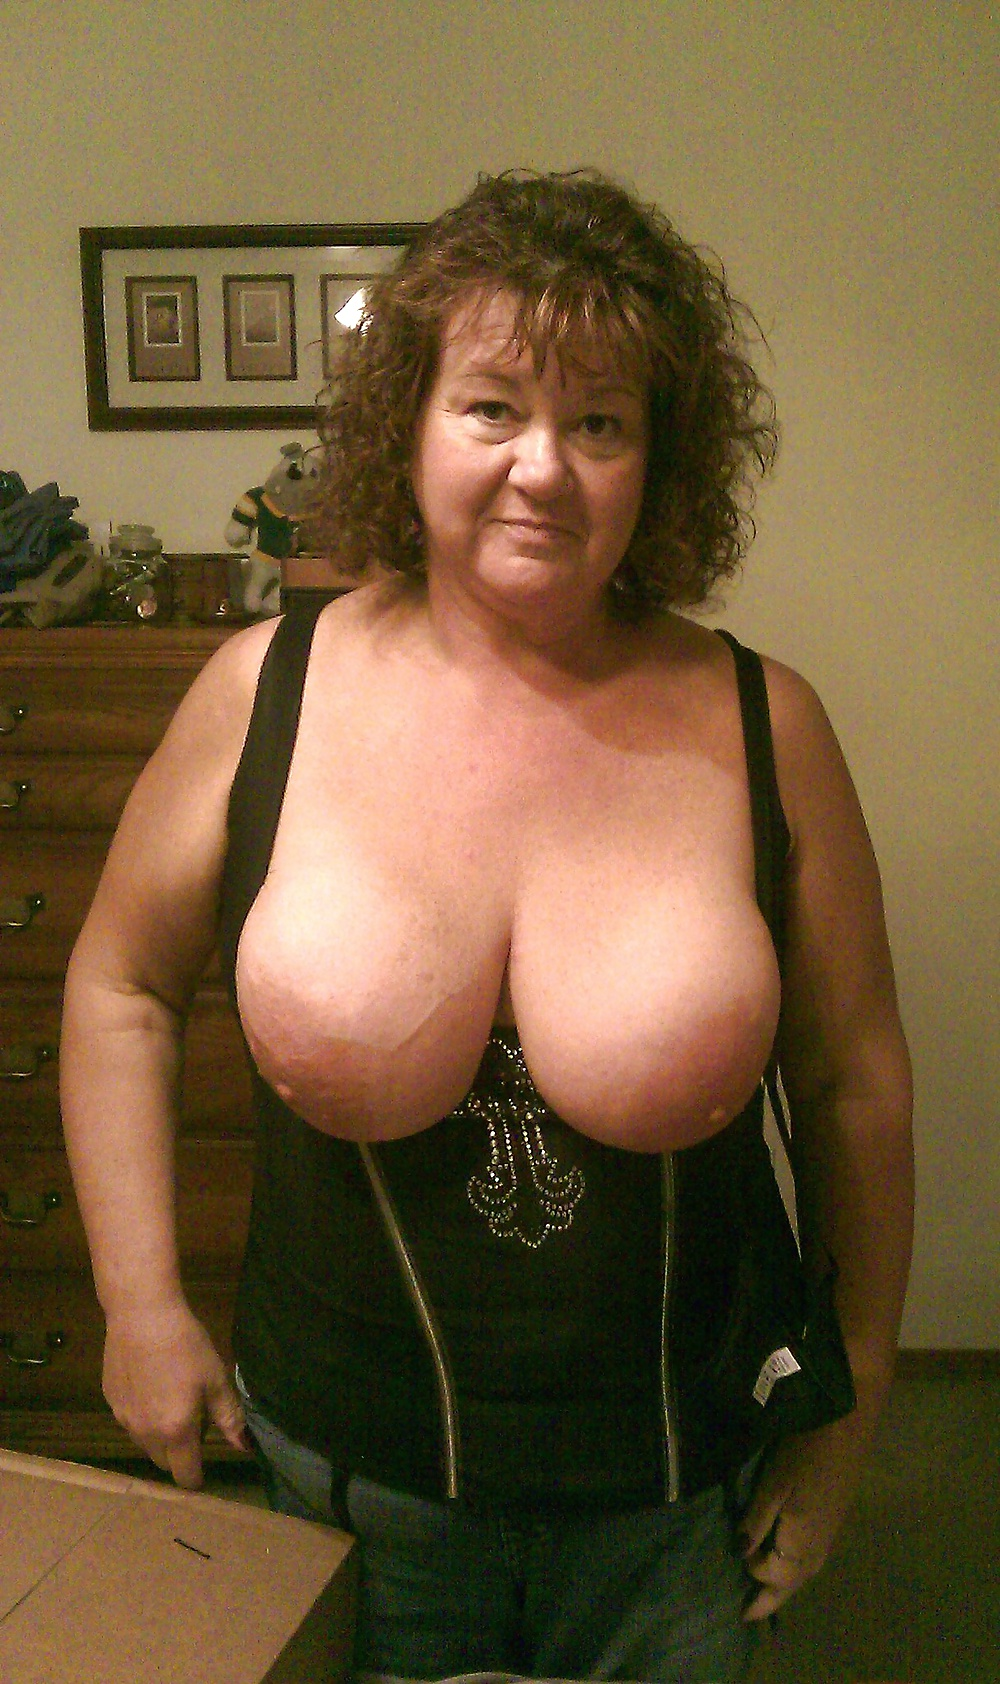 Mature wife big boobs My Mature Wife With Big Tits 4 Jle123 10 Pics Xhamster